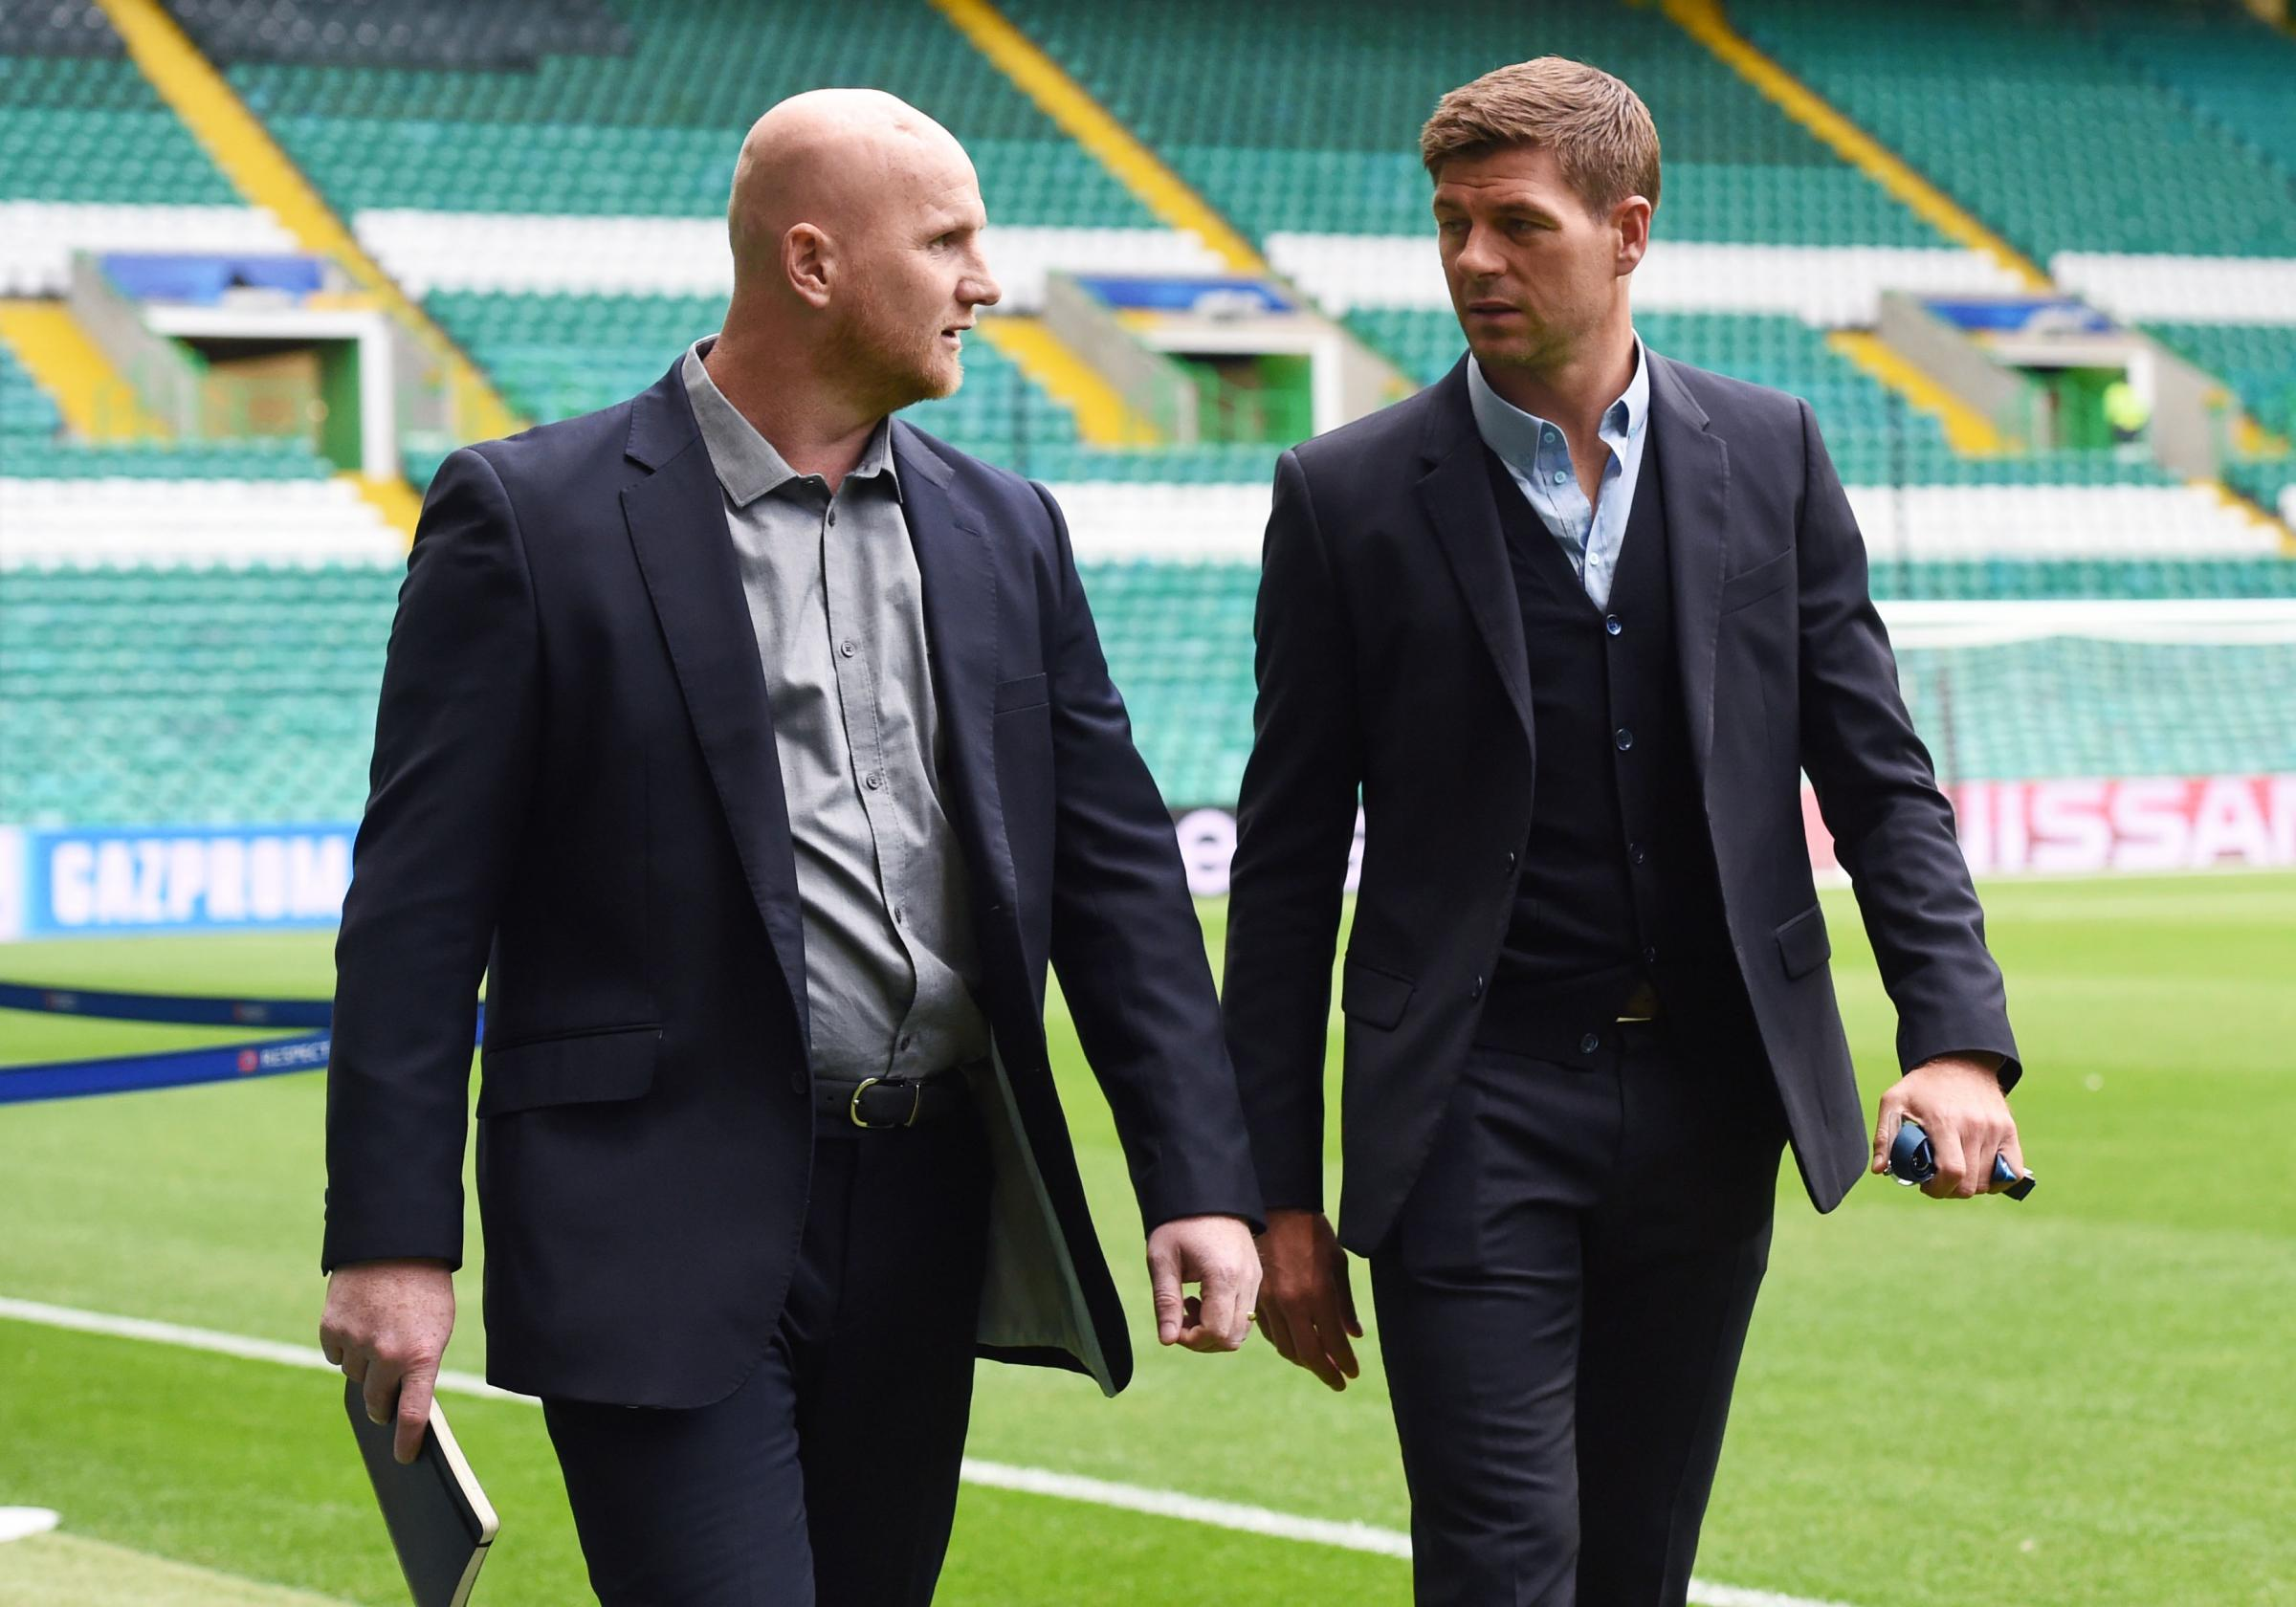 Former Liverpool player Steven Gerrard (right) and former Celtic player John Hartson